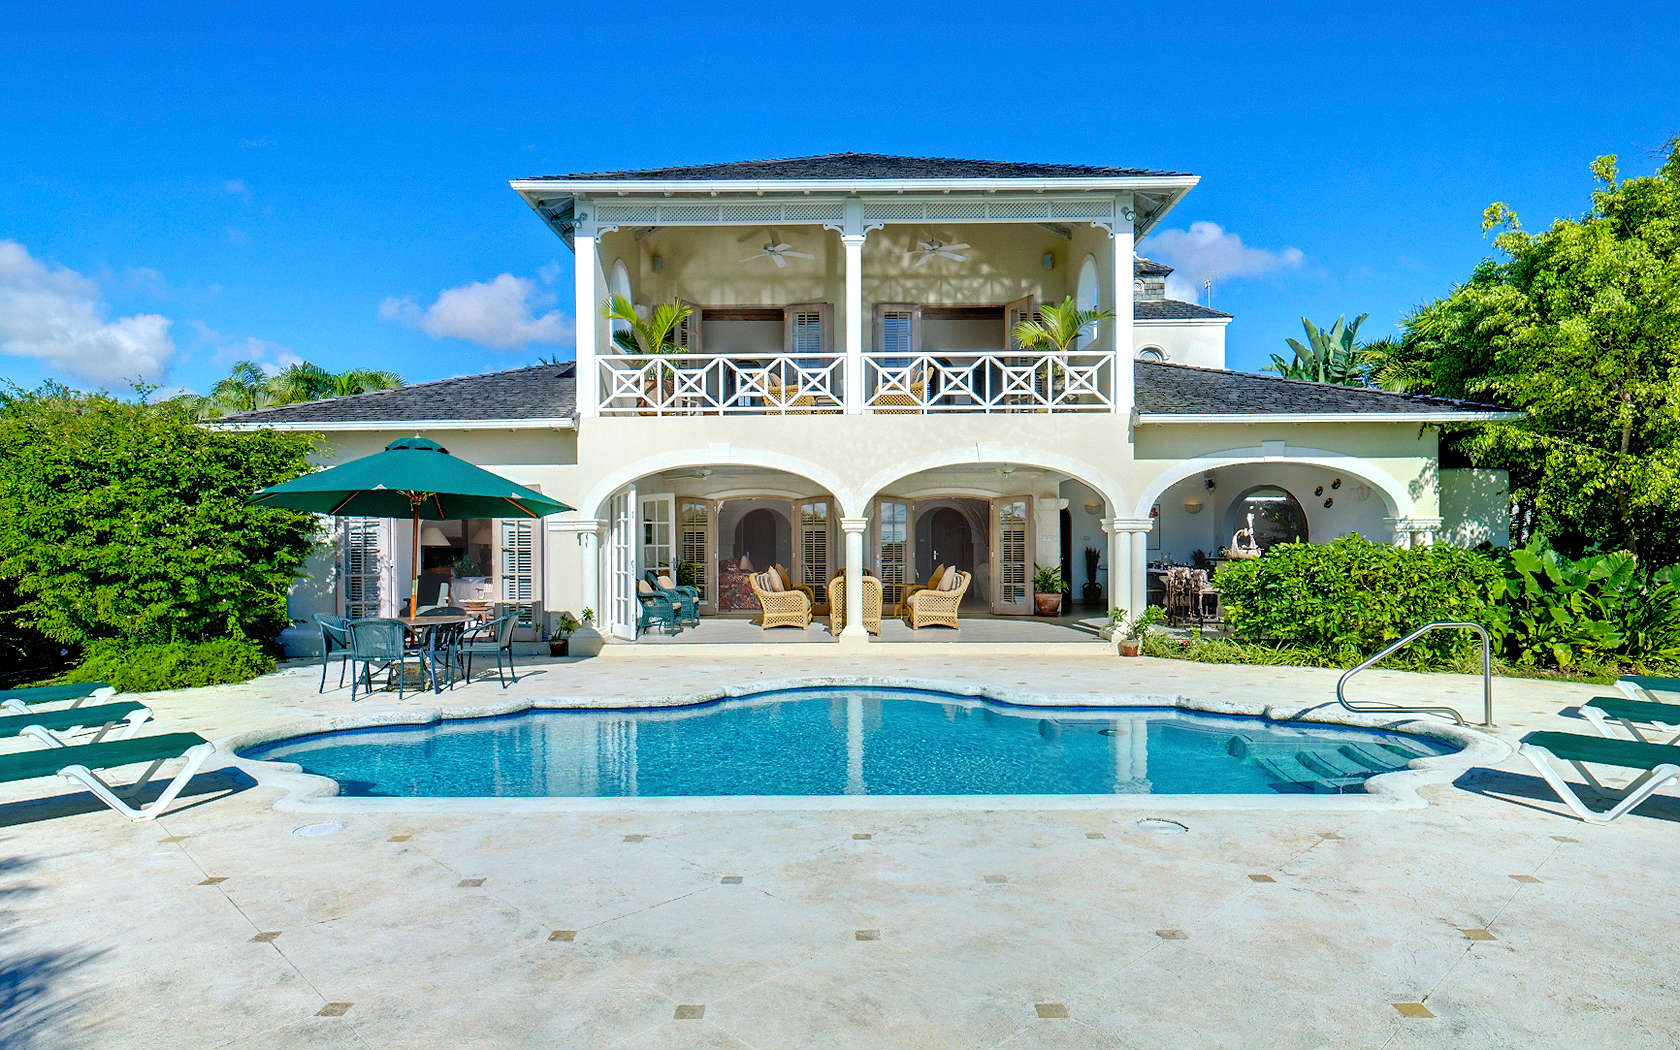 Luxury villa rentals caribbean - Barbados - St james - Sugar hill estate - Oceana - Image 1/13